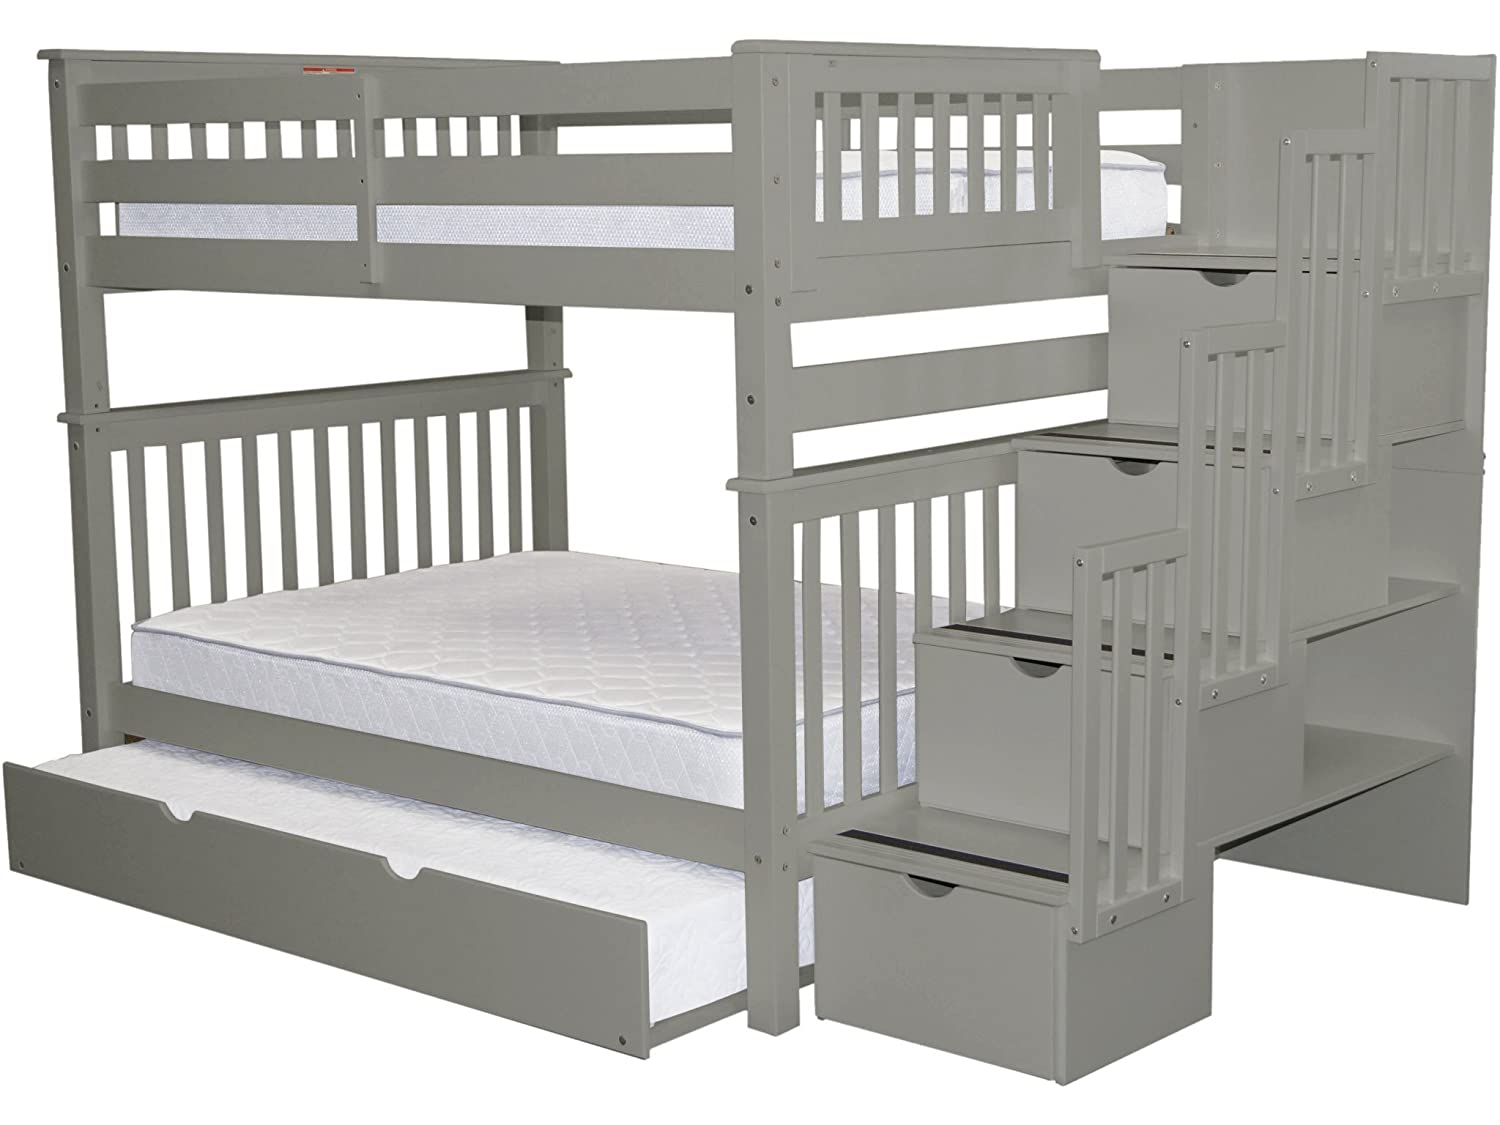 Bedz King Stairway Bunk Beds Full over Full with 4 Drawers in the Steps and a Full Trundle, Gray